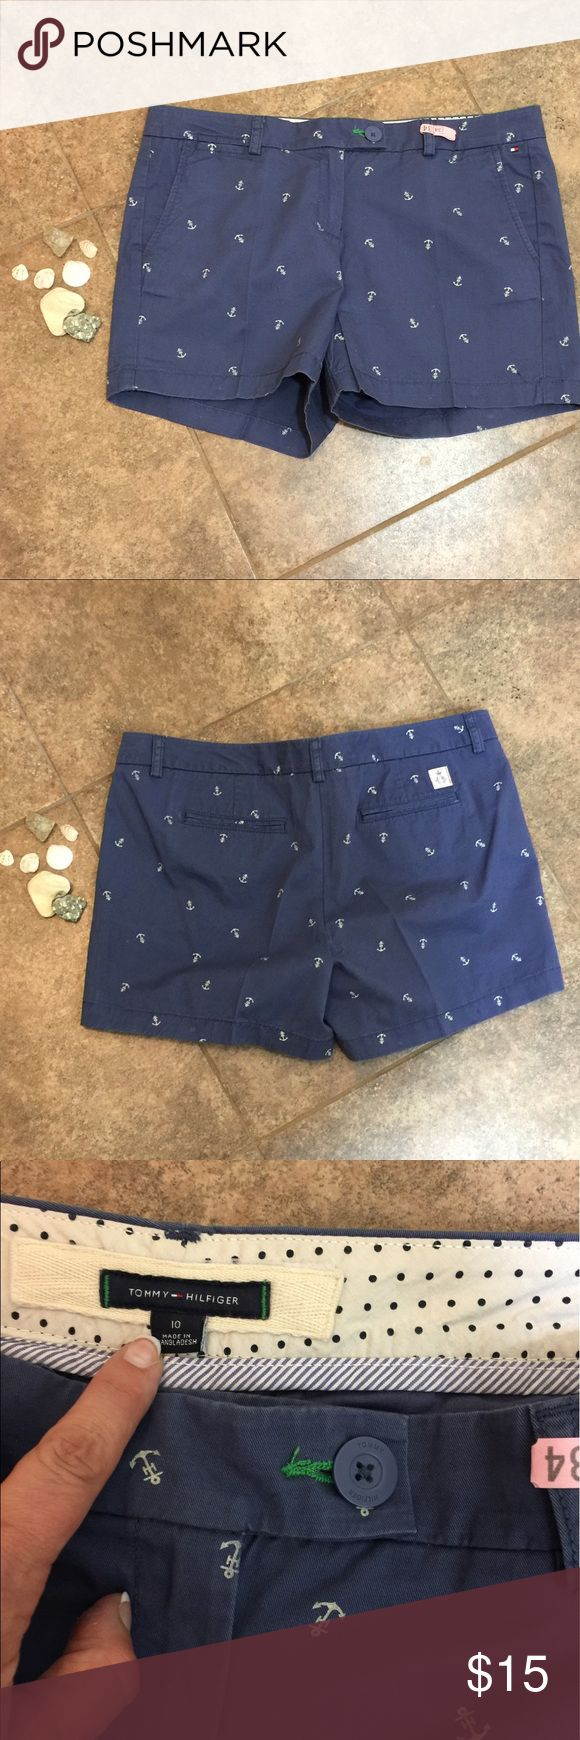 "Tommy Hilfiger Anchor Shorts Only worn 1x. Purchased for a cruise. So cute. . Approx measurements: waist L to R 17.5""; waist to bottom hem 13"".   I dry clean all my clothes and are all well taken care of. Unless otherwise stated all my items are new with or without tags.  Make an offer  or bundle  for more savings.  Smoke free pet loving home. Make a reasonable offer.  Keep in mind Posh Mark takes 20% from sellers when submitting offers  Tommy Hilfiger Shorts"